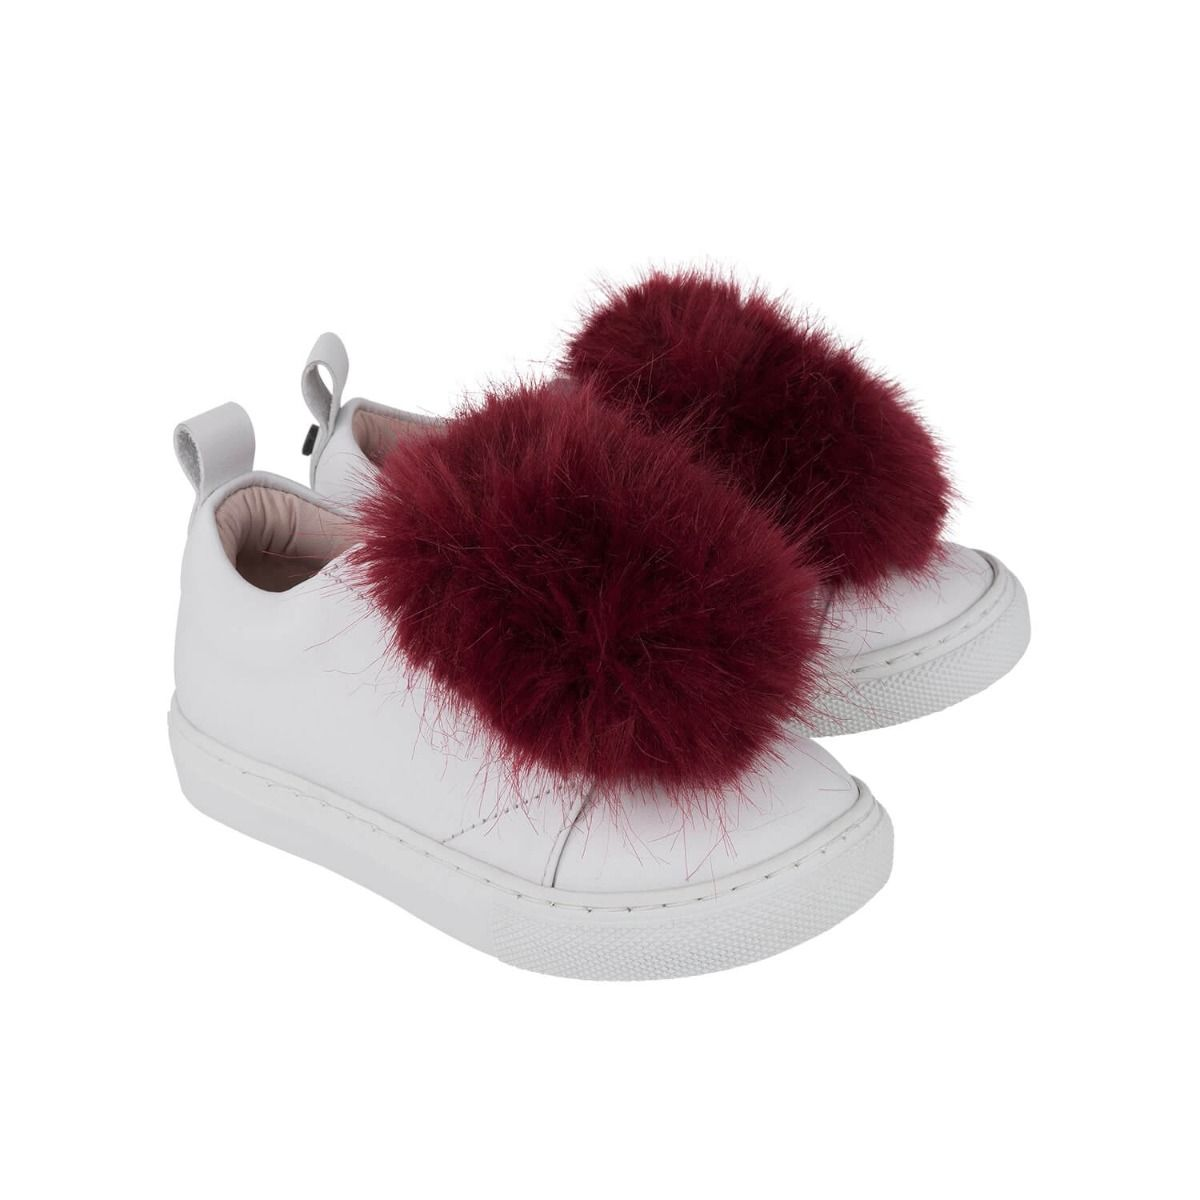 Baby and girl's sneakers in white leather with dark red faux fur applique.